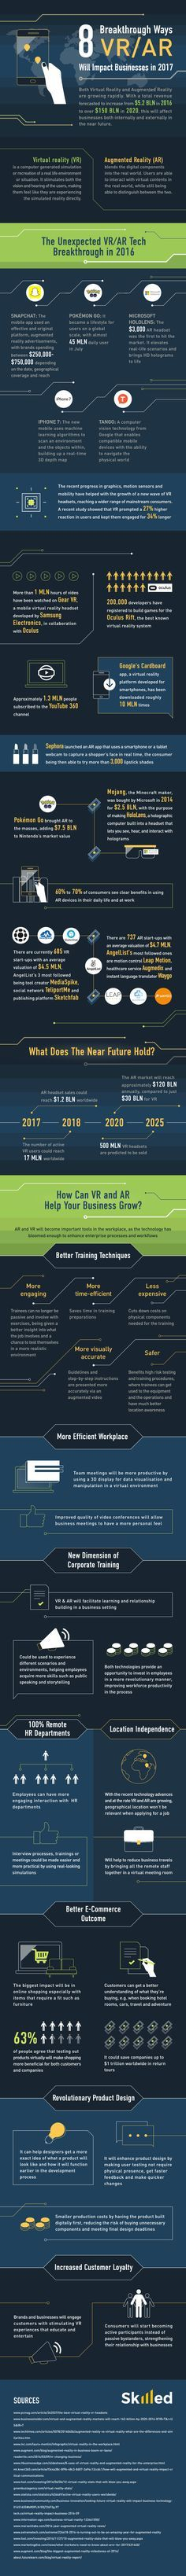 364123d0e38 8 Breakthrough Ways VR AR Will Impact Businesses in 2017  Infographic